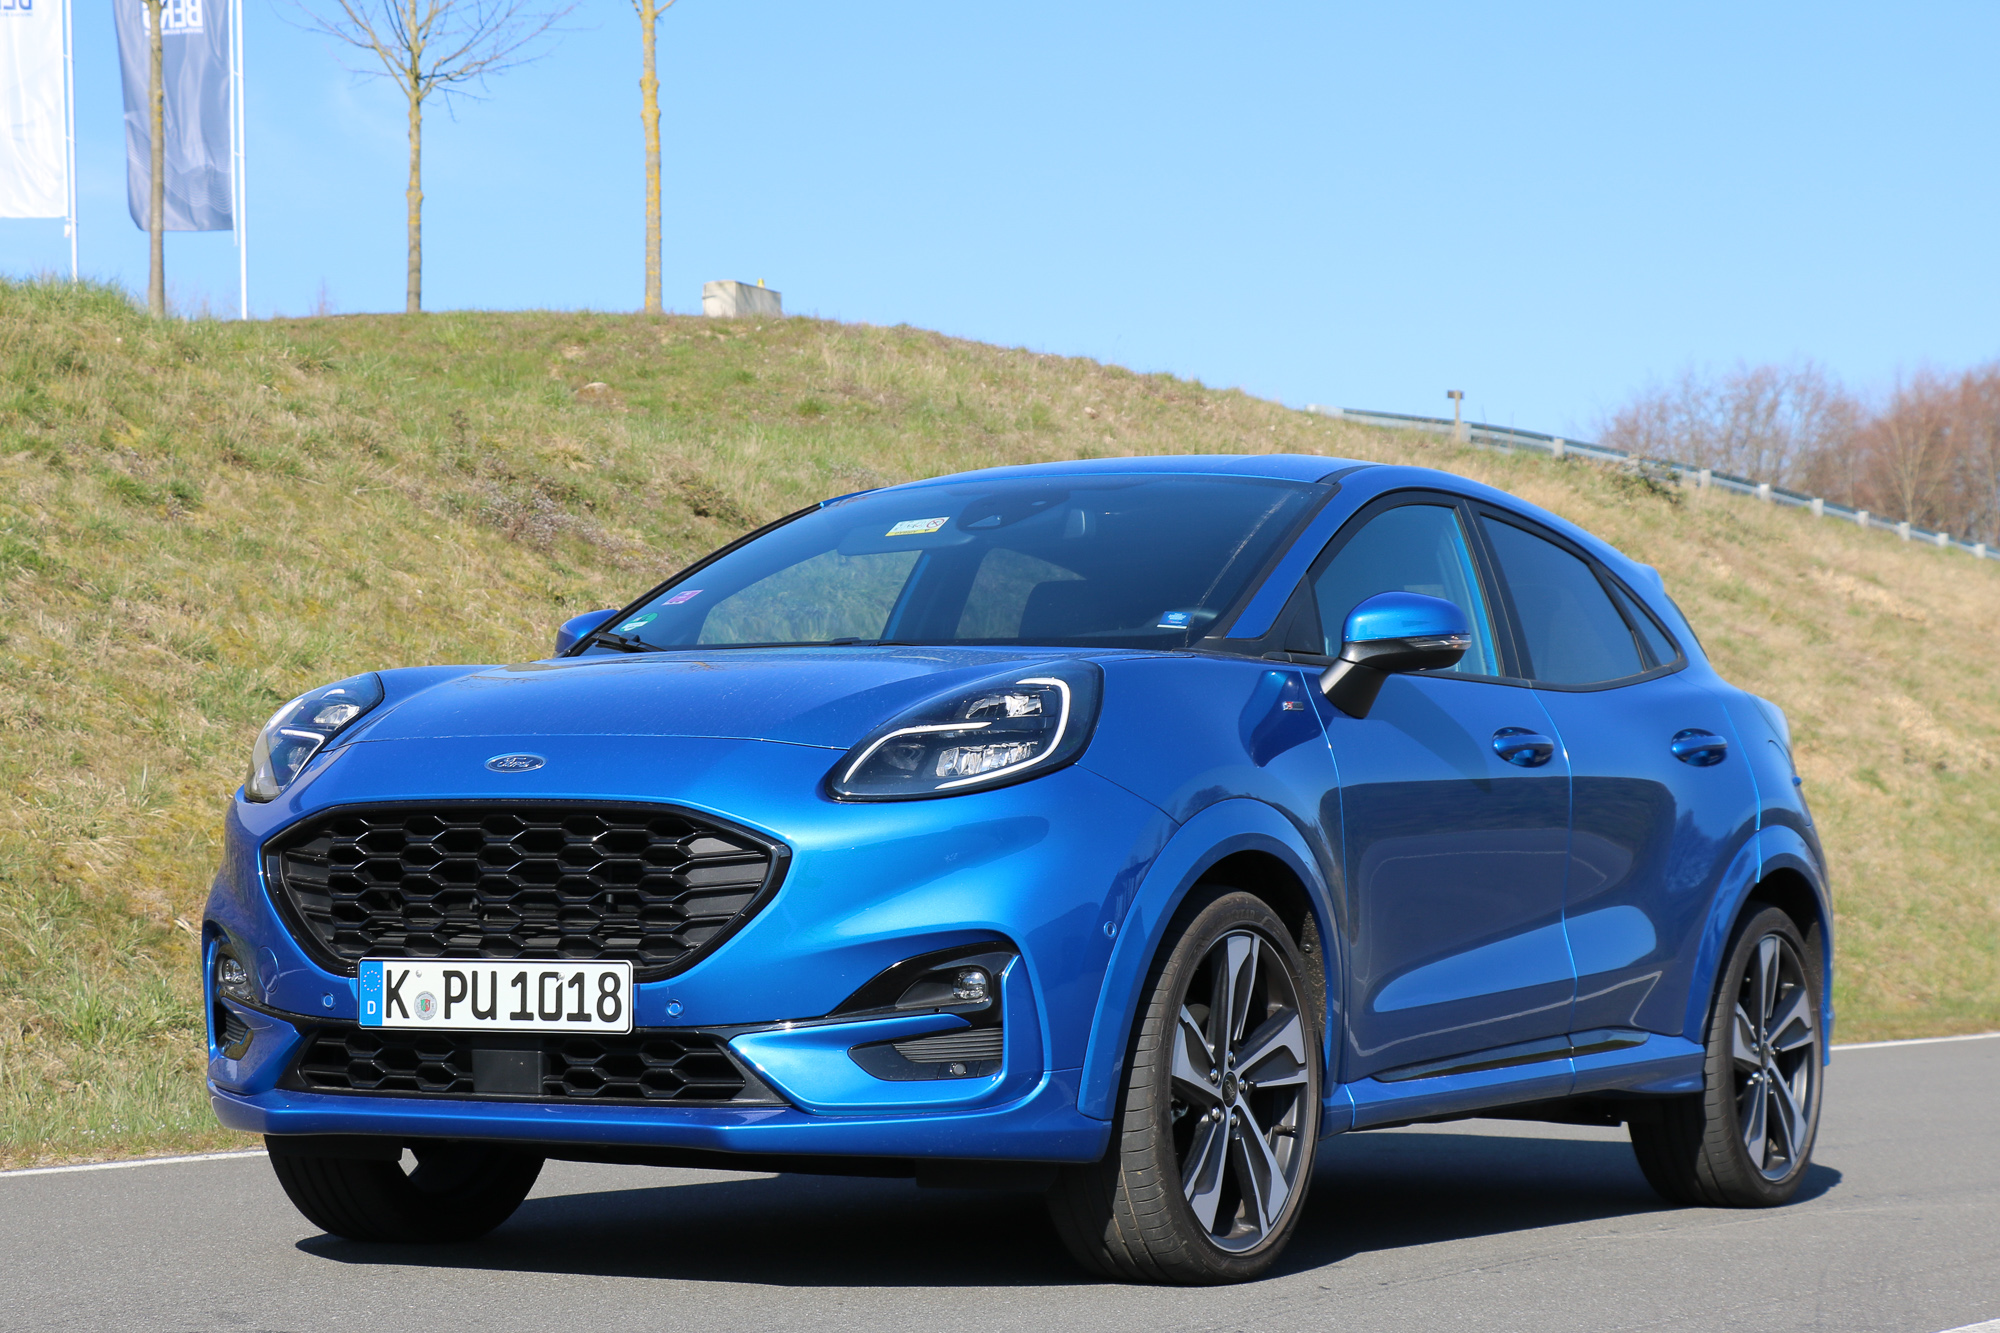 2020 Ford Puma 1.0 EcoBoost Hybrid Video